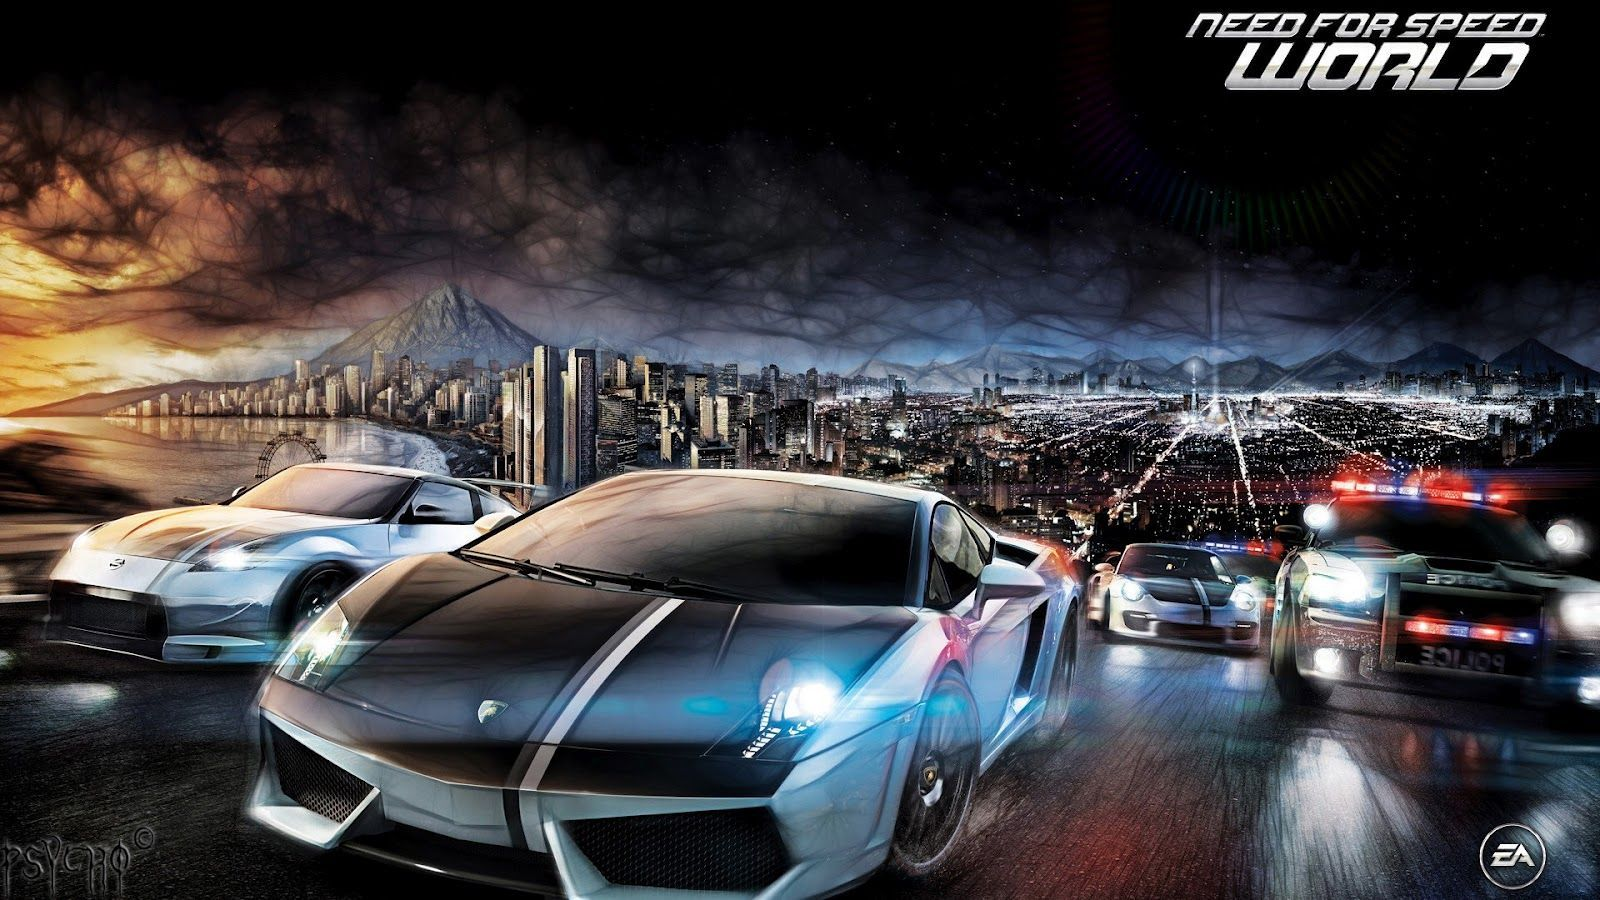 Speedy Car Wallpapers For Free Desktop Download All - Cool cars backgrounds